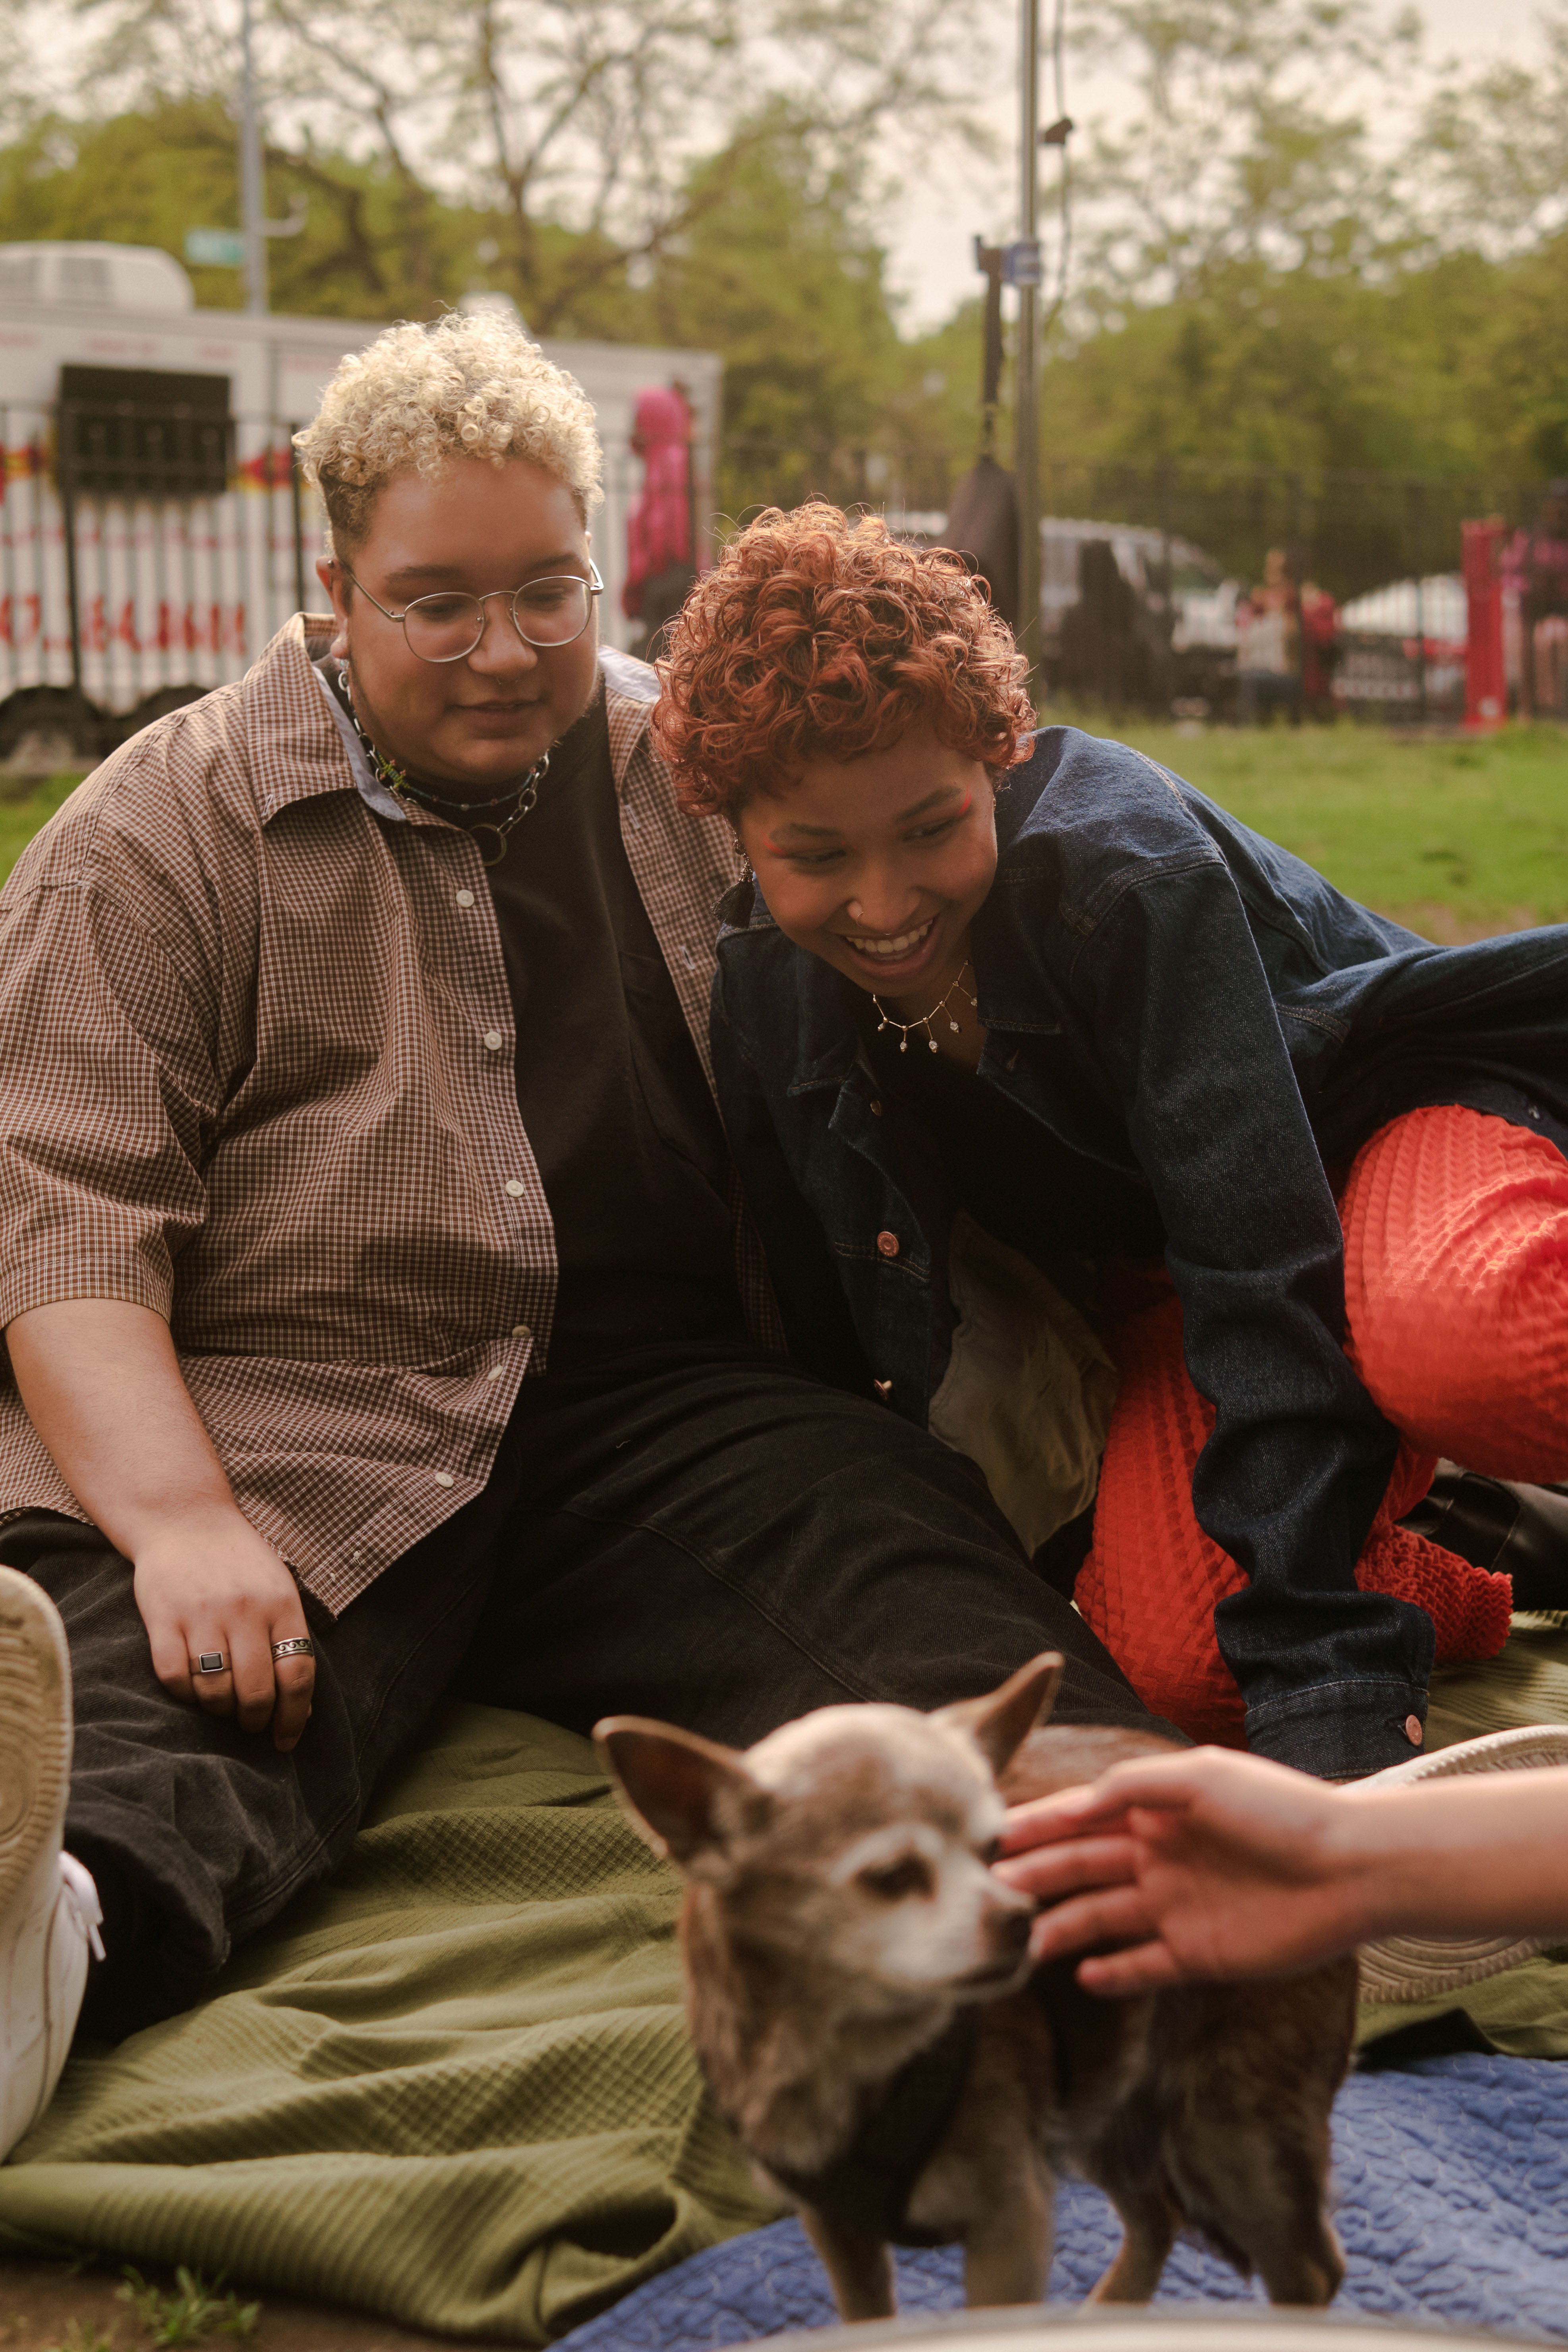 A trans couple hanging out with a dog at the park